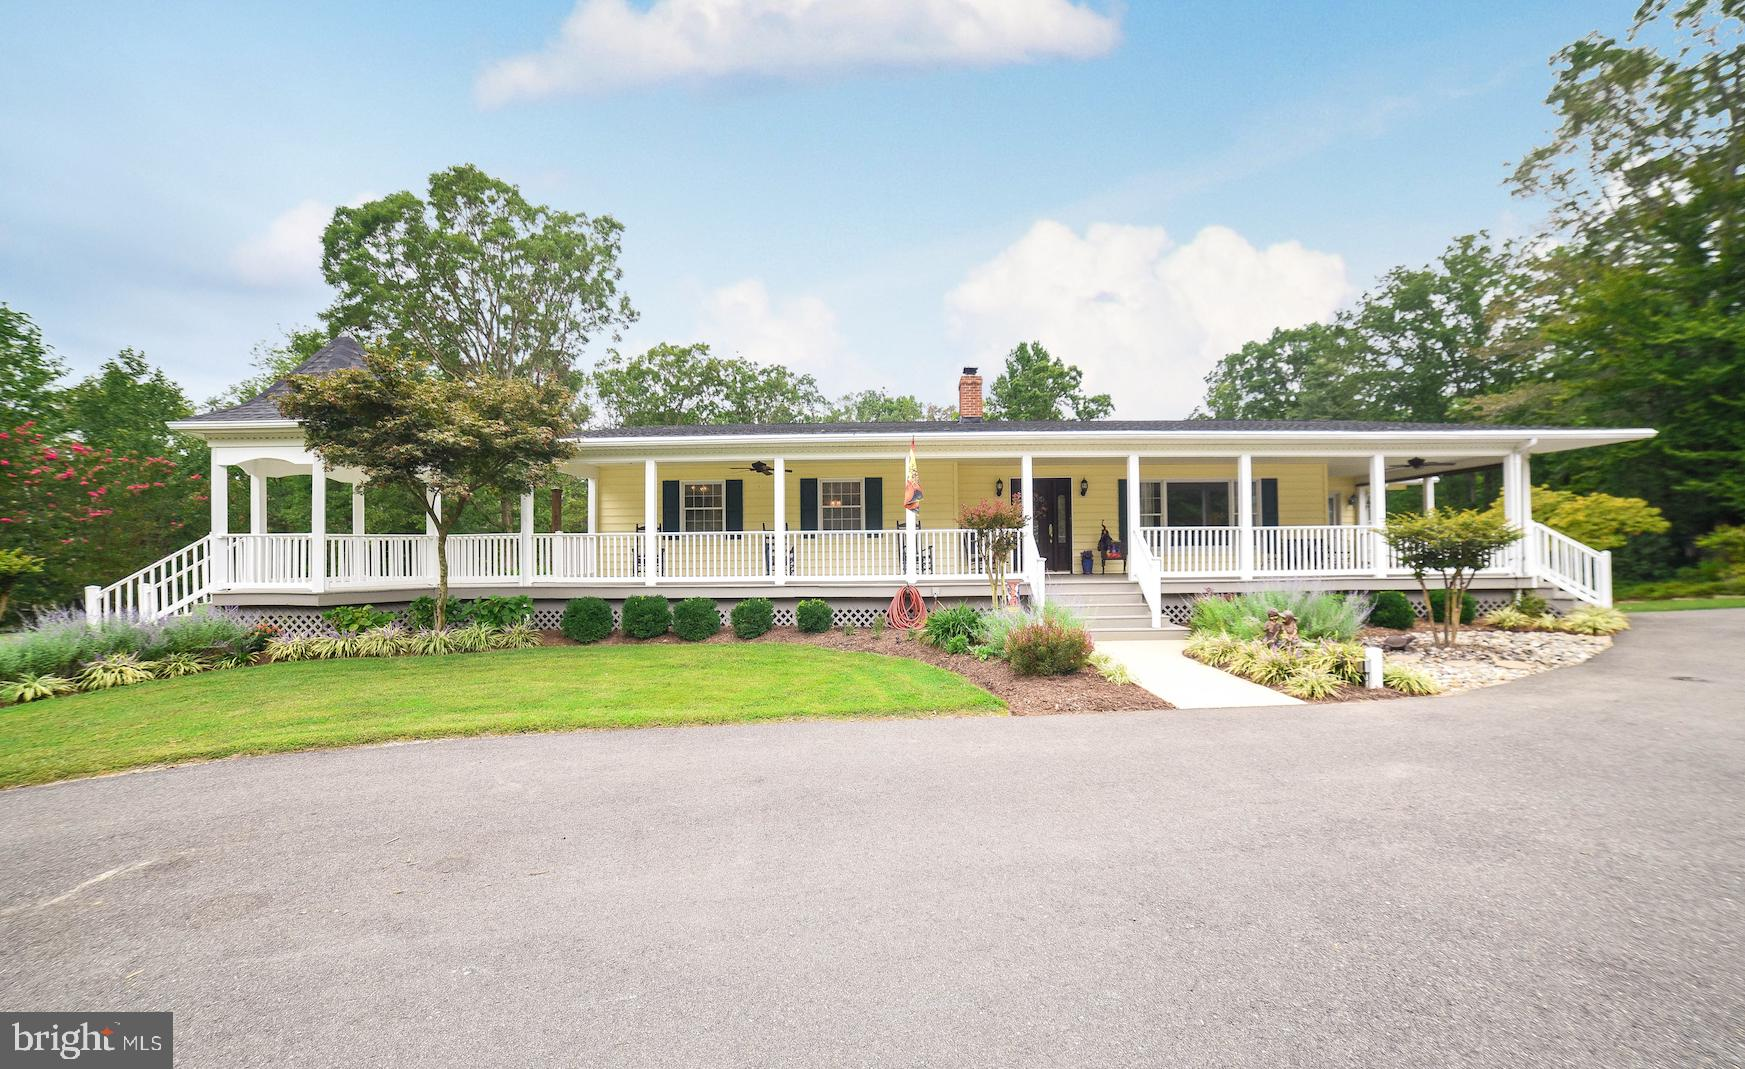 This impeccably maintained rambler sits on a secluded 2 acre lot.  Lush landscaping and an expansive